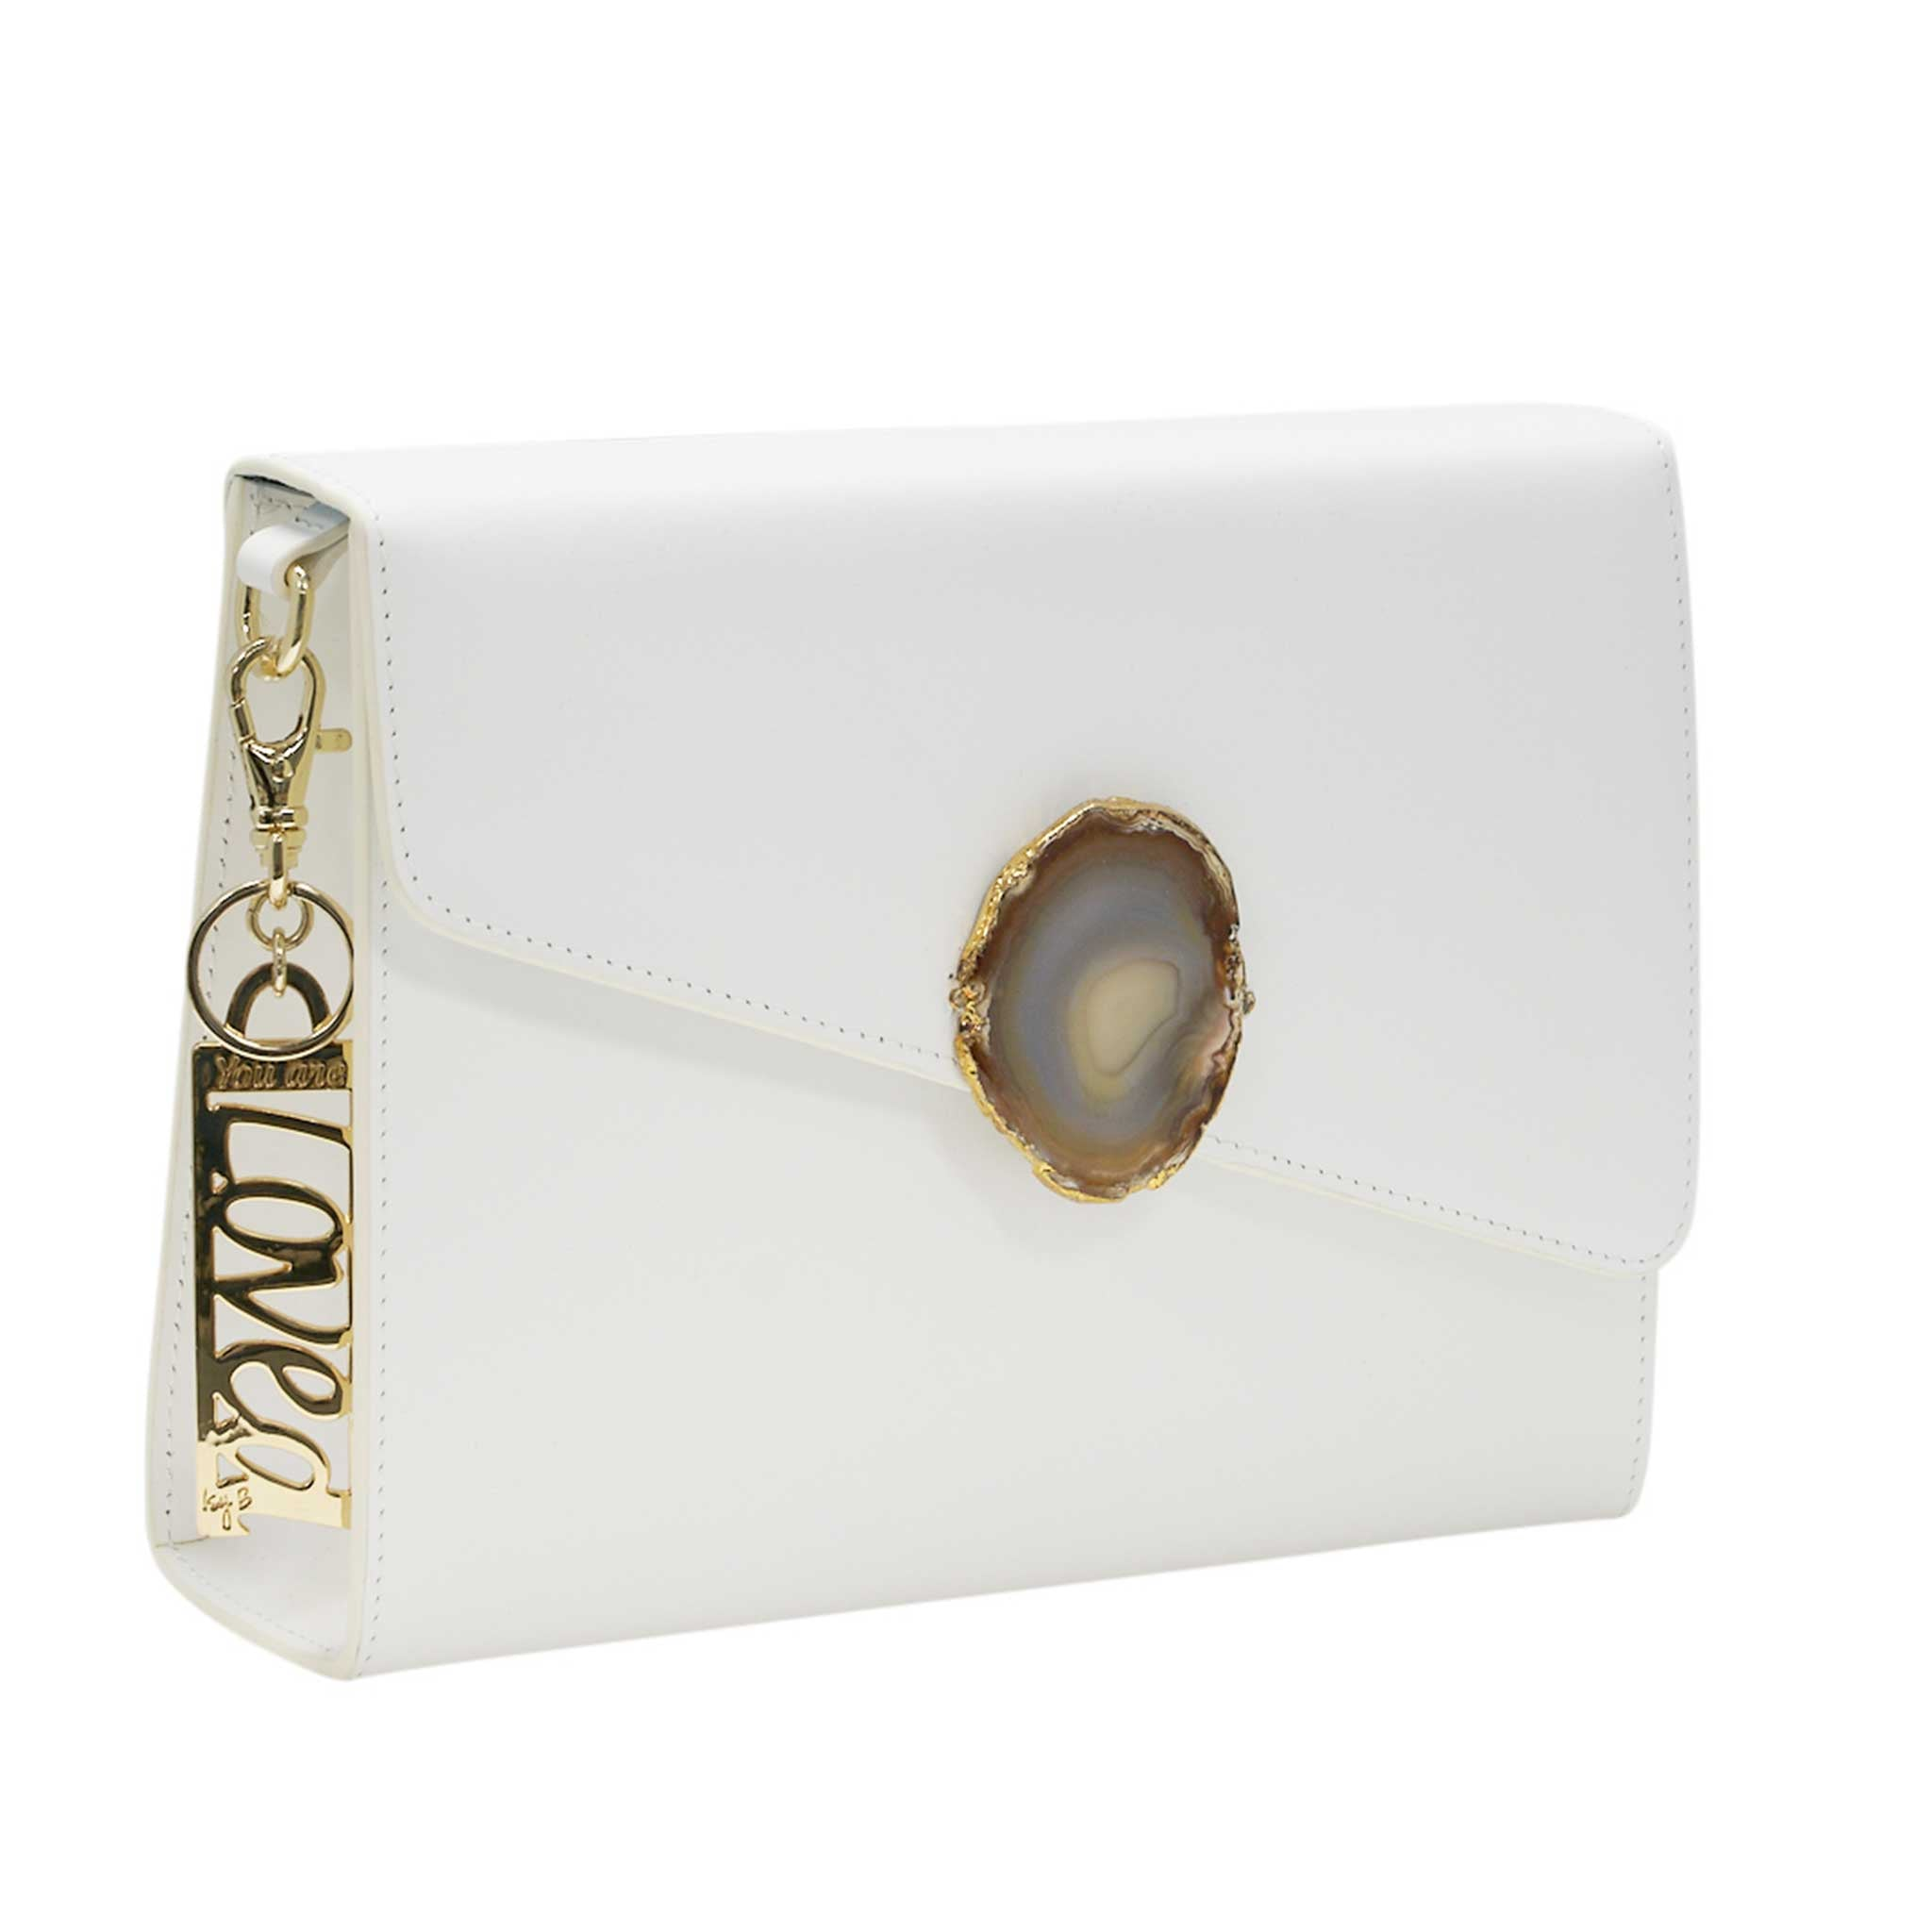 LOVED BAG - MOONSTONE WHITE LEATHER WITH YELLOW AGATE - 1.03.003.048